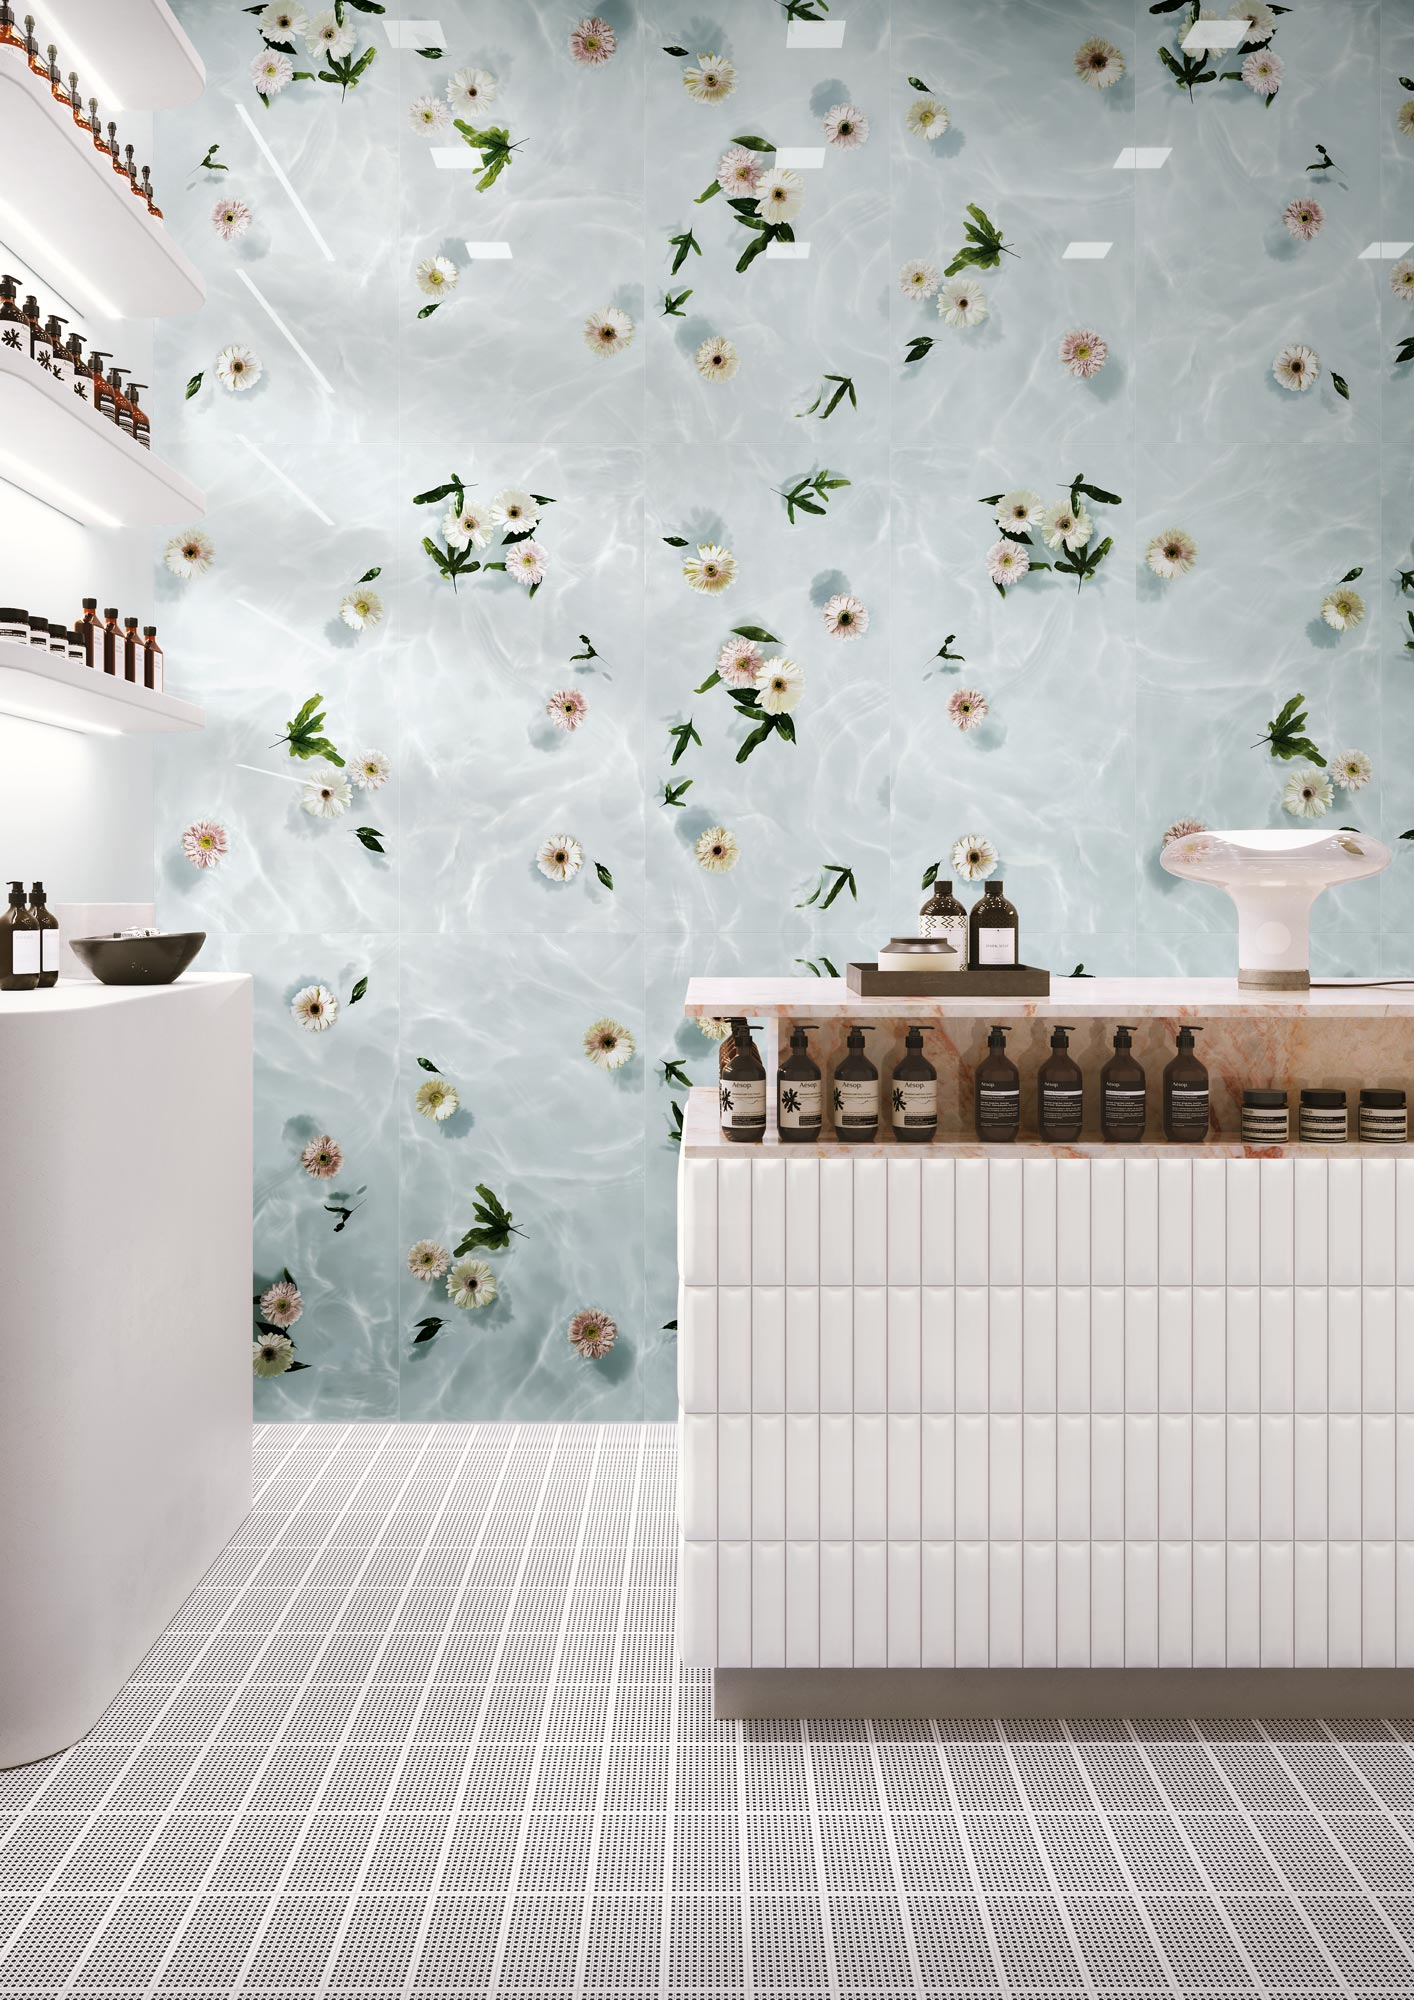 "Wall Paper41 Lux Louis 60x120 24""x48"" - Desk Biscuit Dune Bianco 5x20 2""x8"" - Floor Sunday Twist Notte 10x20 4""x8"""